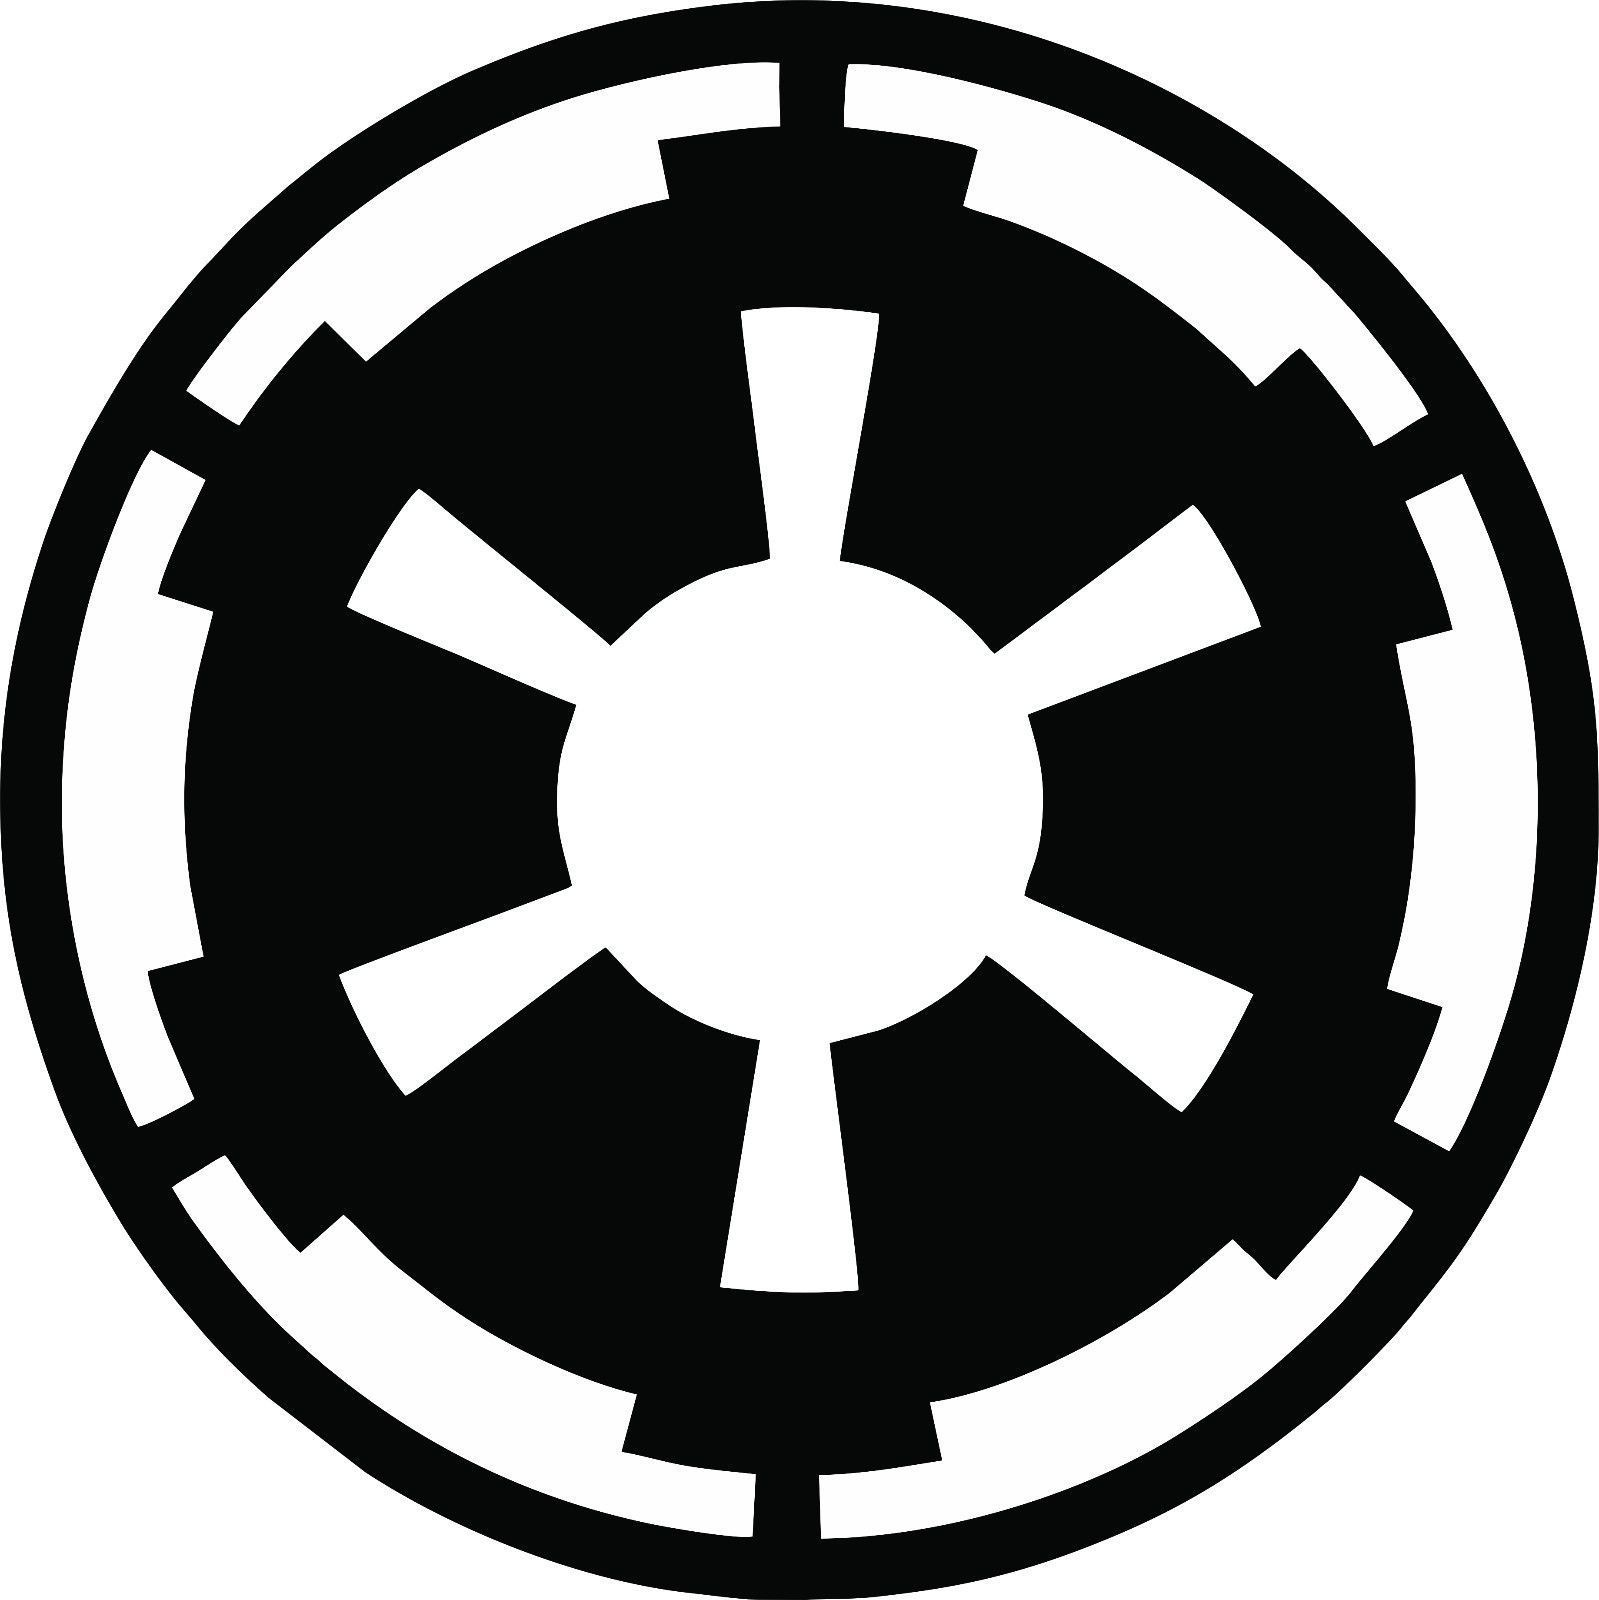 Empire Symbol Logo Vinyl Decal Star Wars The Force Awakens